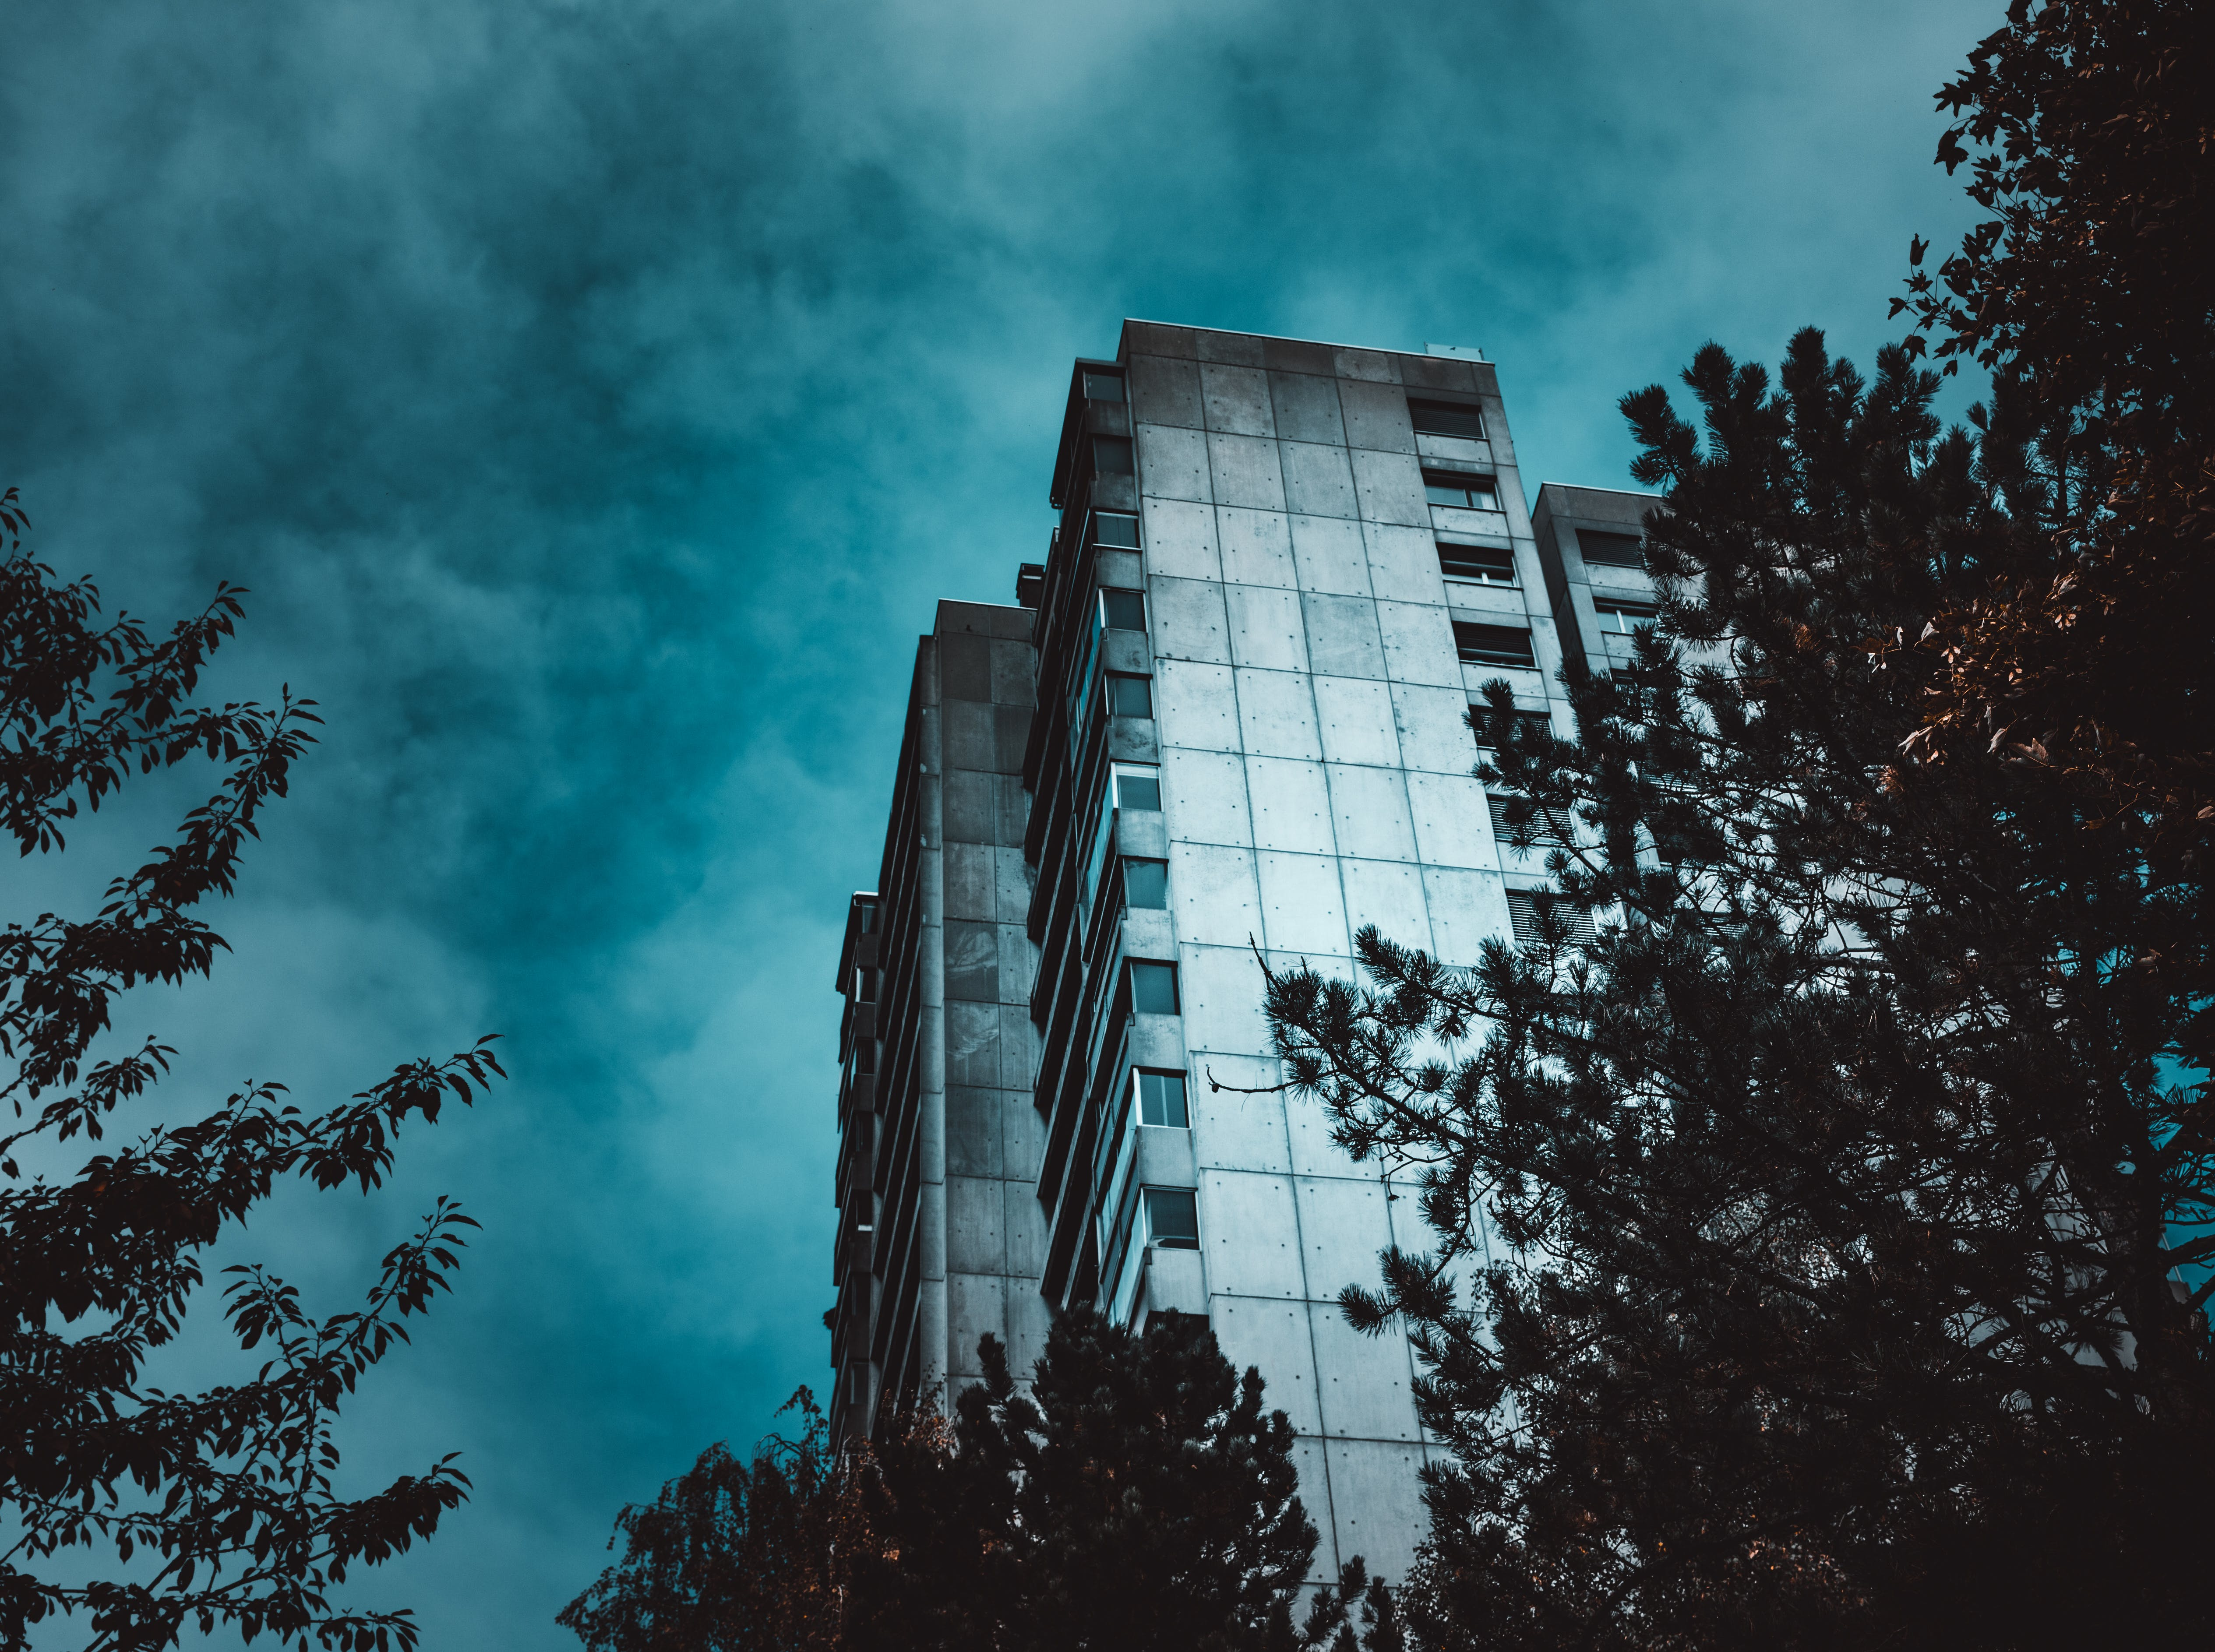 Low-angle Photography of White and Gray High-rise Building